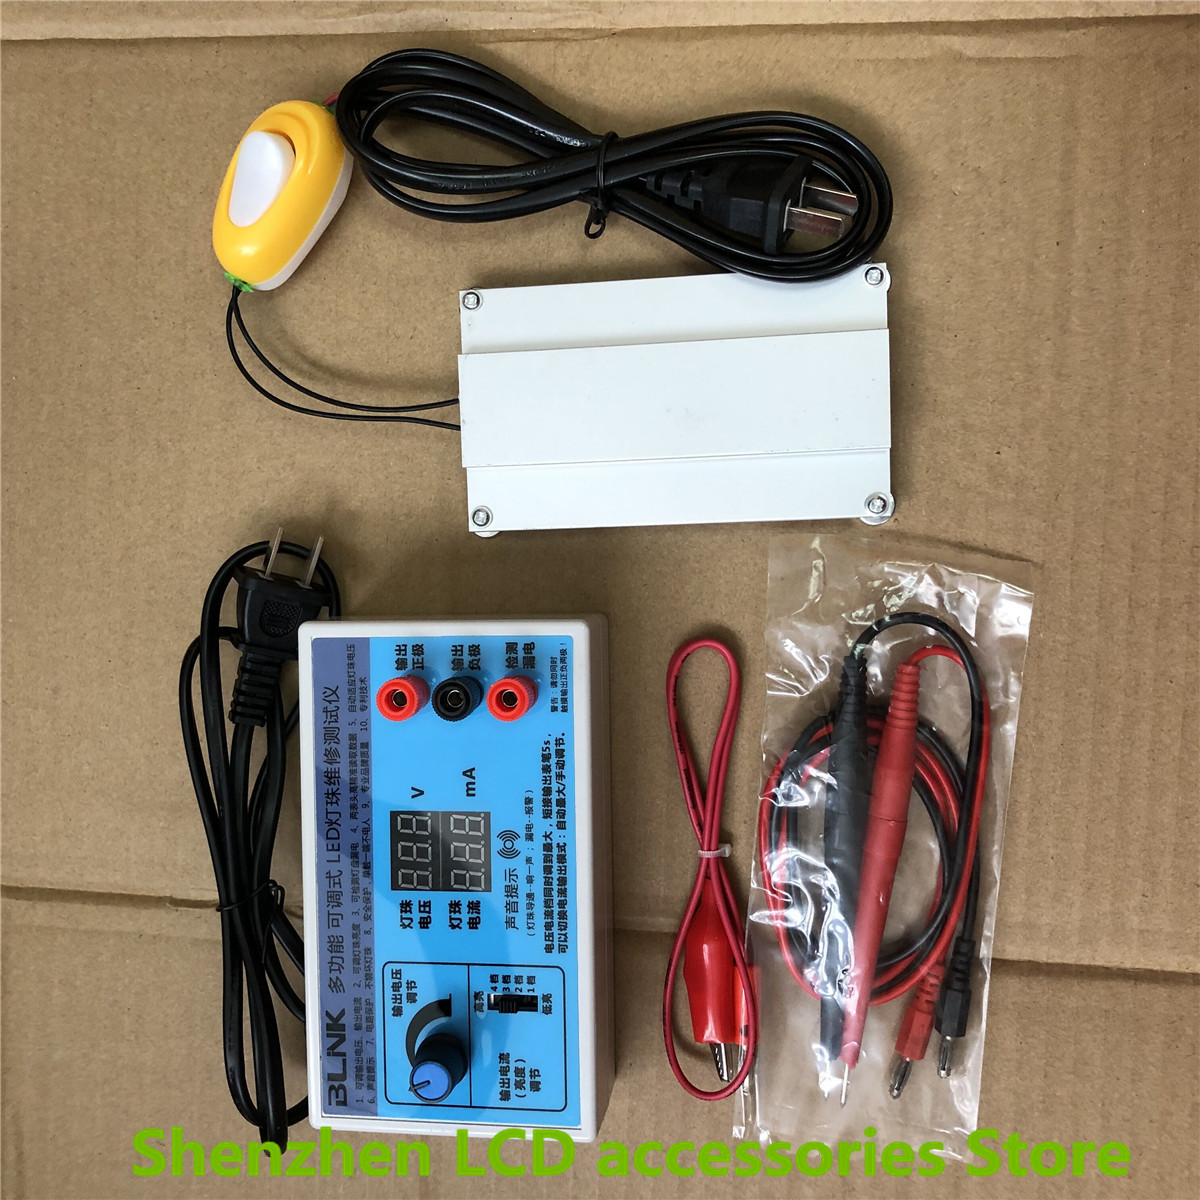 LED Lamp Bead Tester LED Light Bar Tester LCD TV Board Backlight Detector And PTC Disassembly Pad  100%NEW